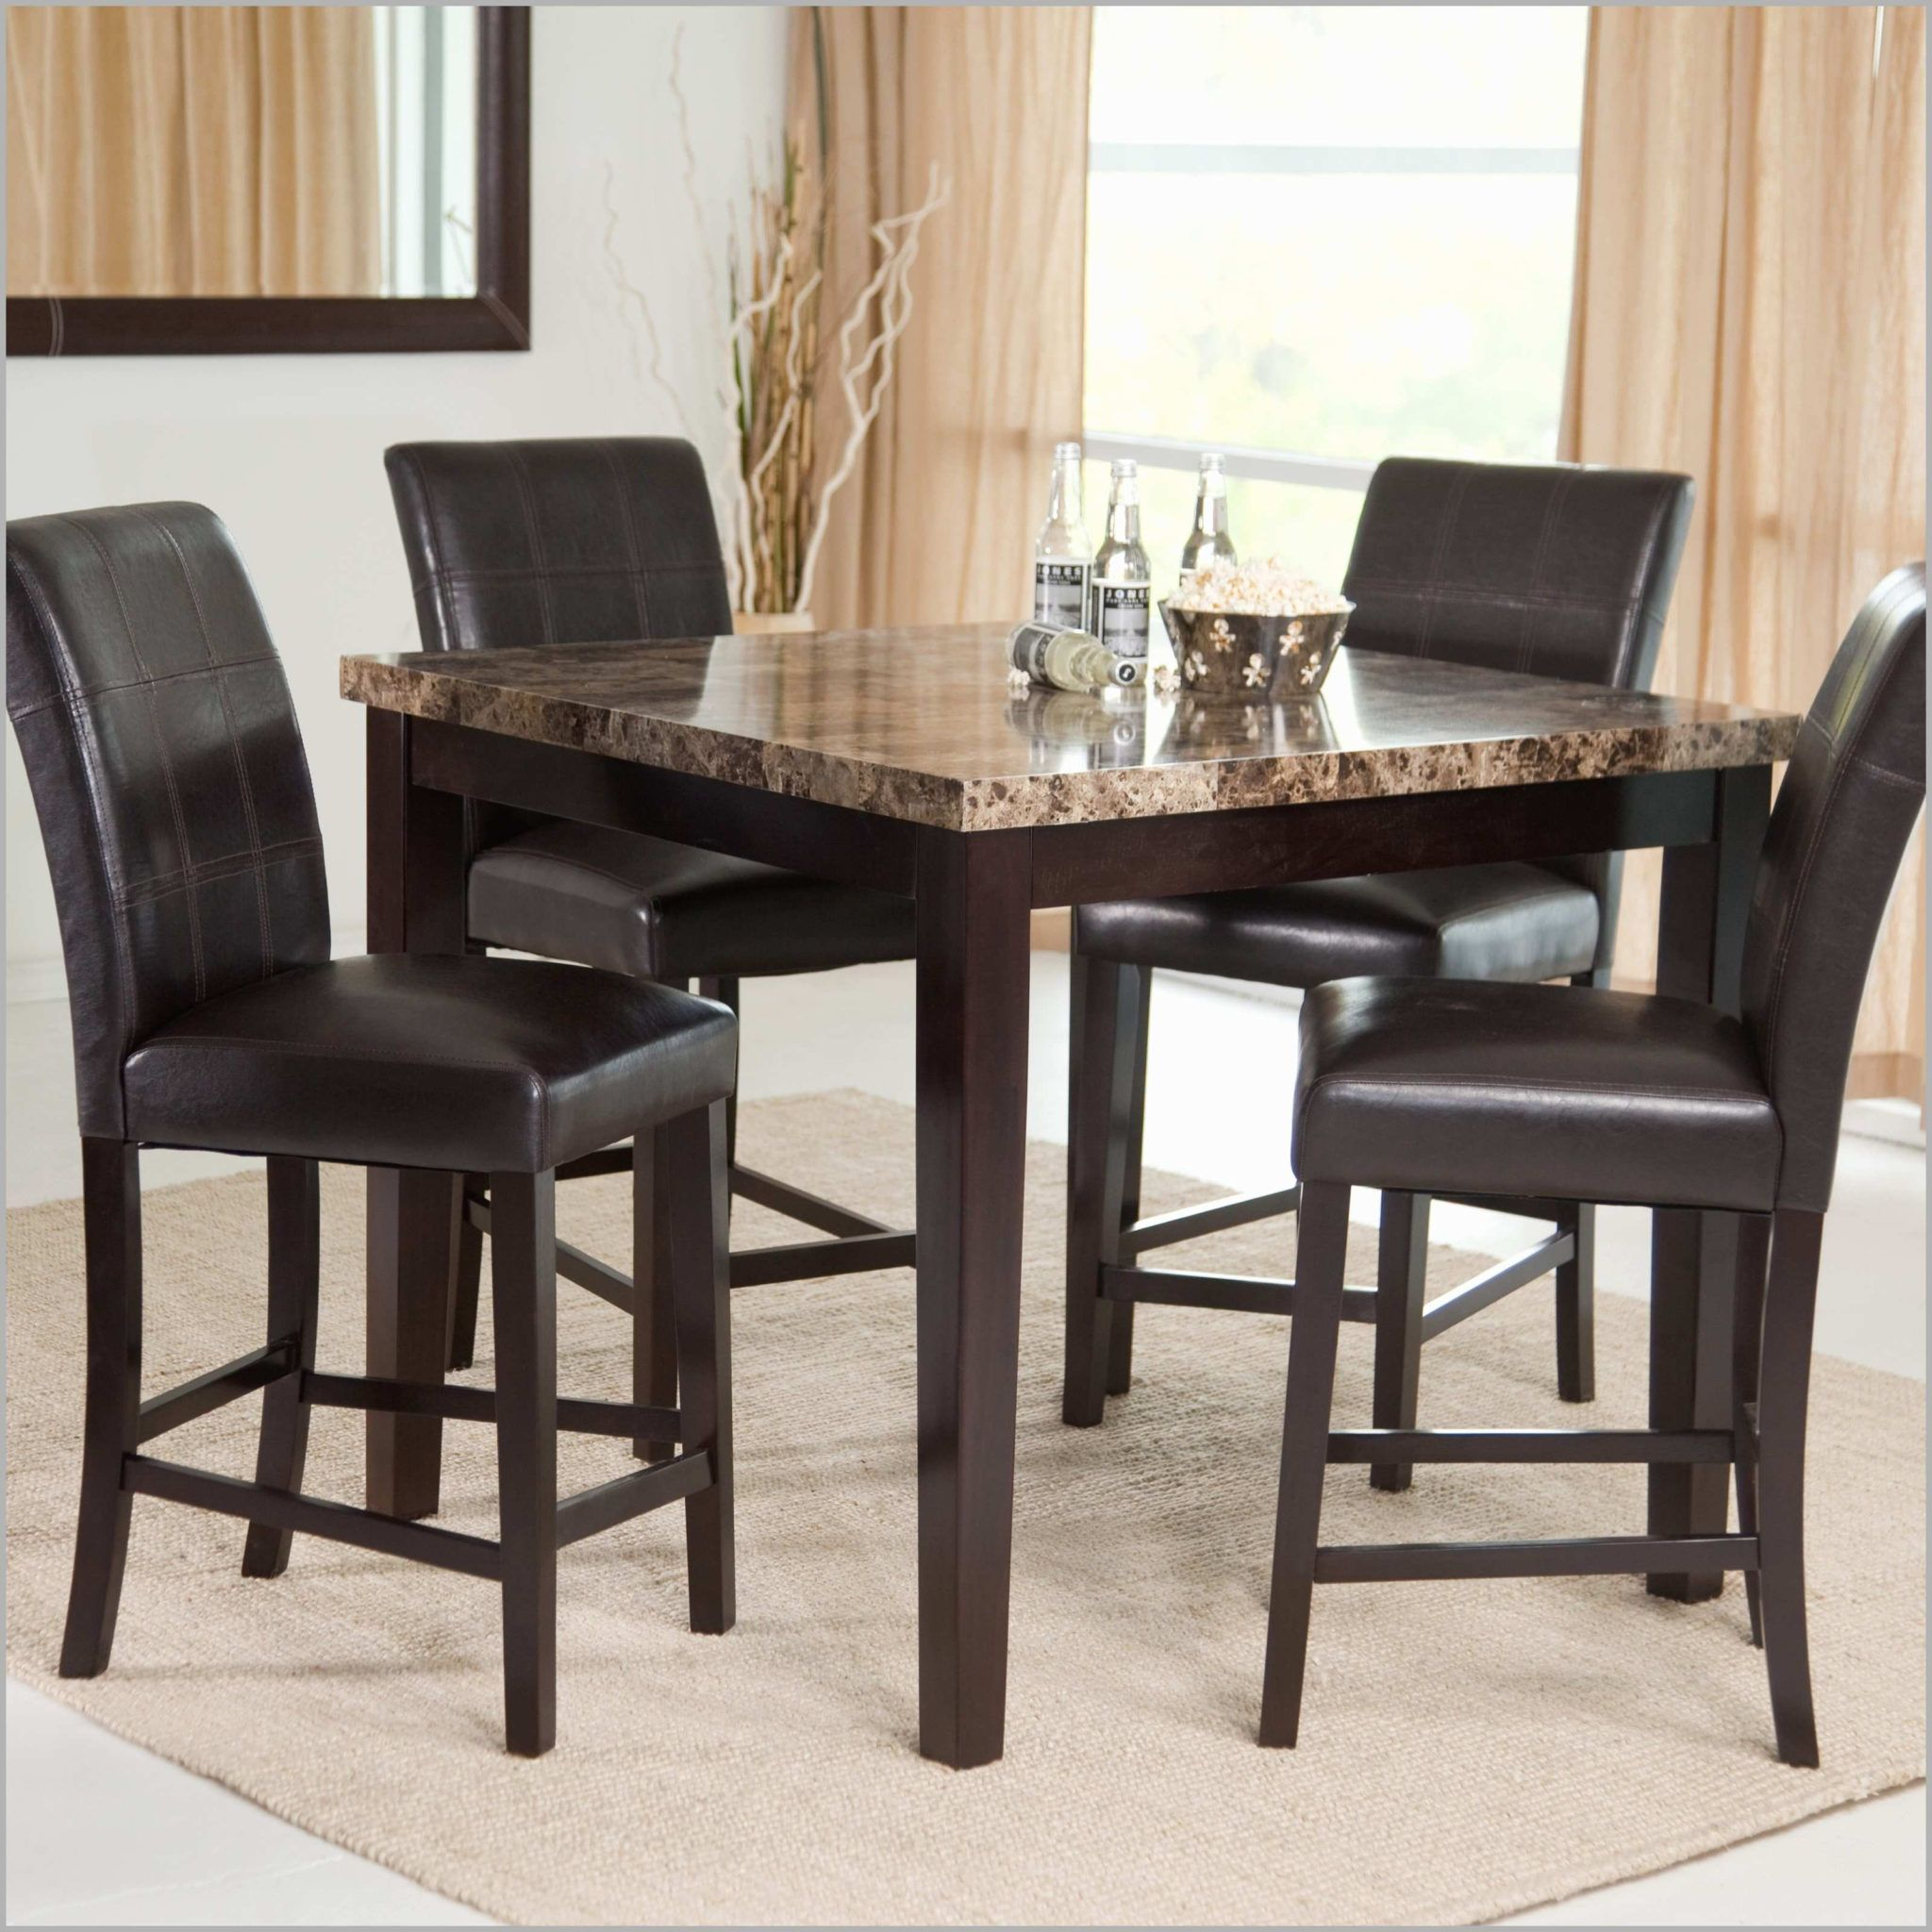 Beautiful Black High Top Kitchen Table Dining Room Table Set